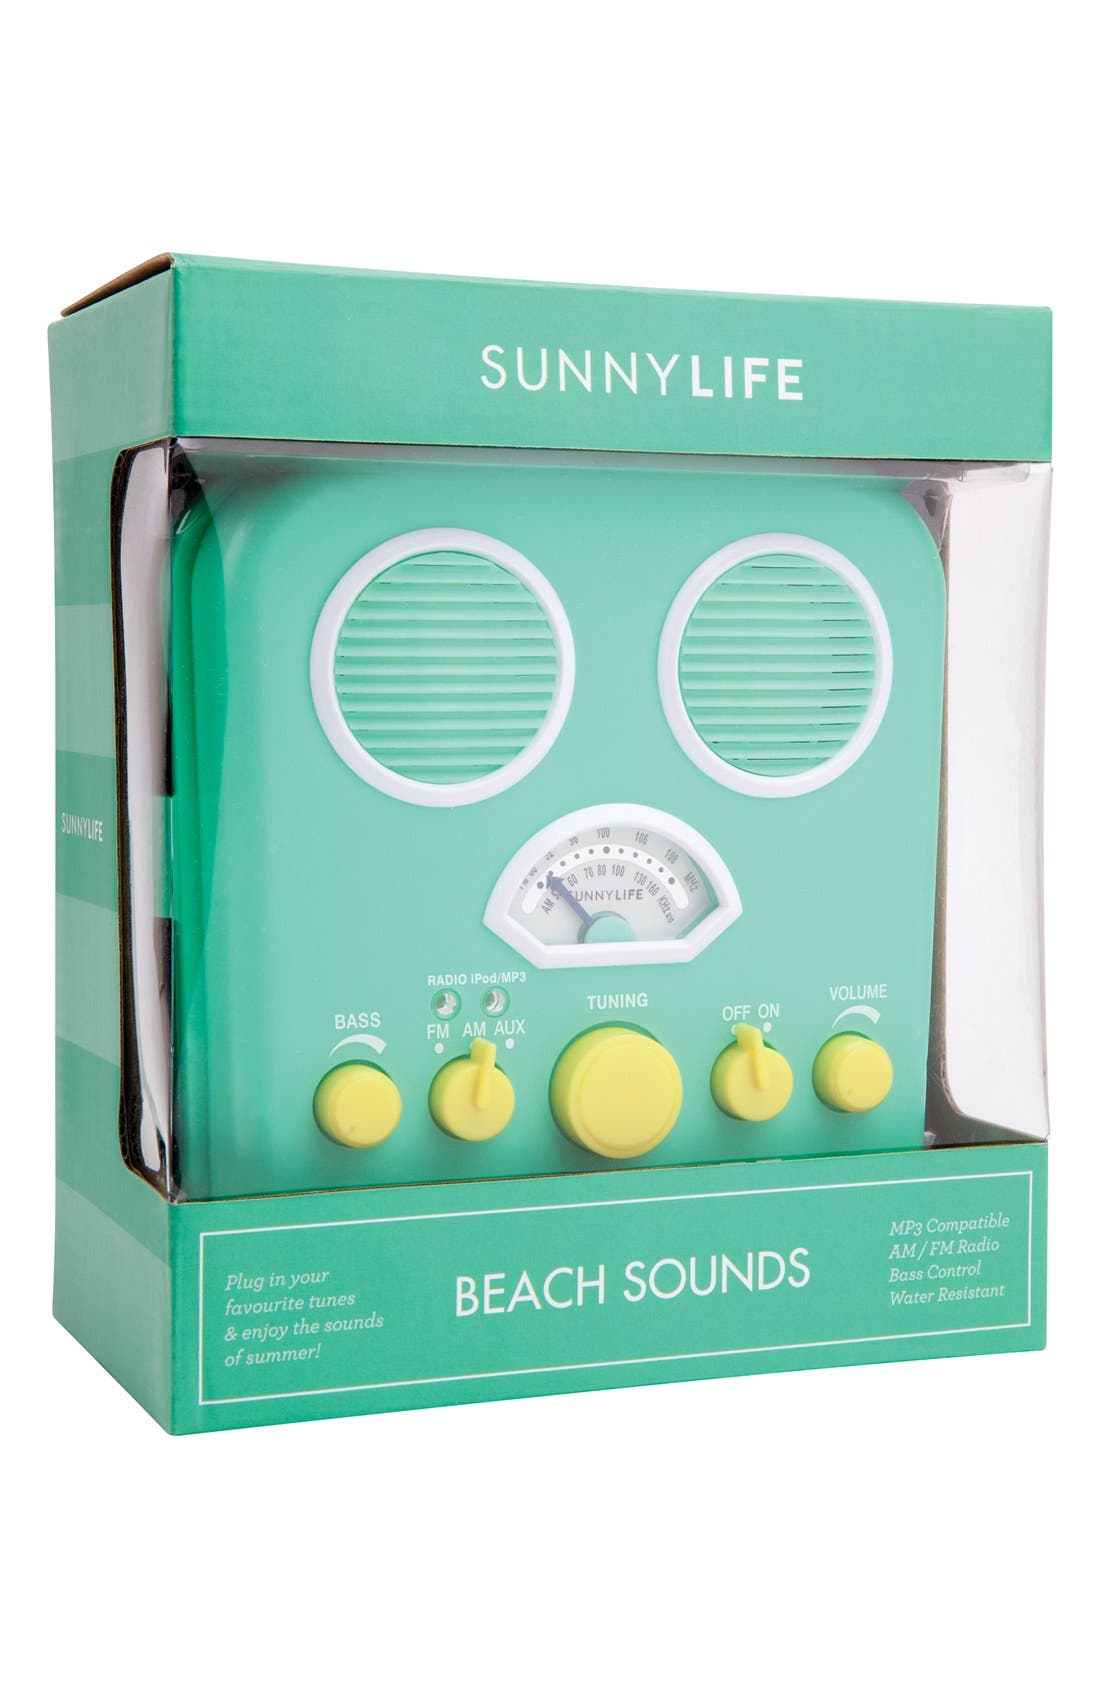 Main Image - Sunnylife 'Beach Sounds' Portable Water Resistant Speaker & Radio